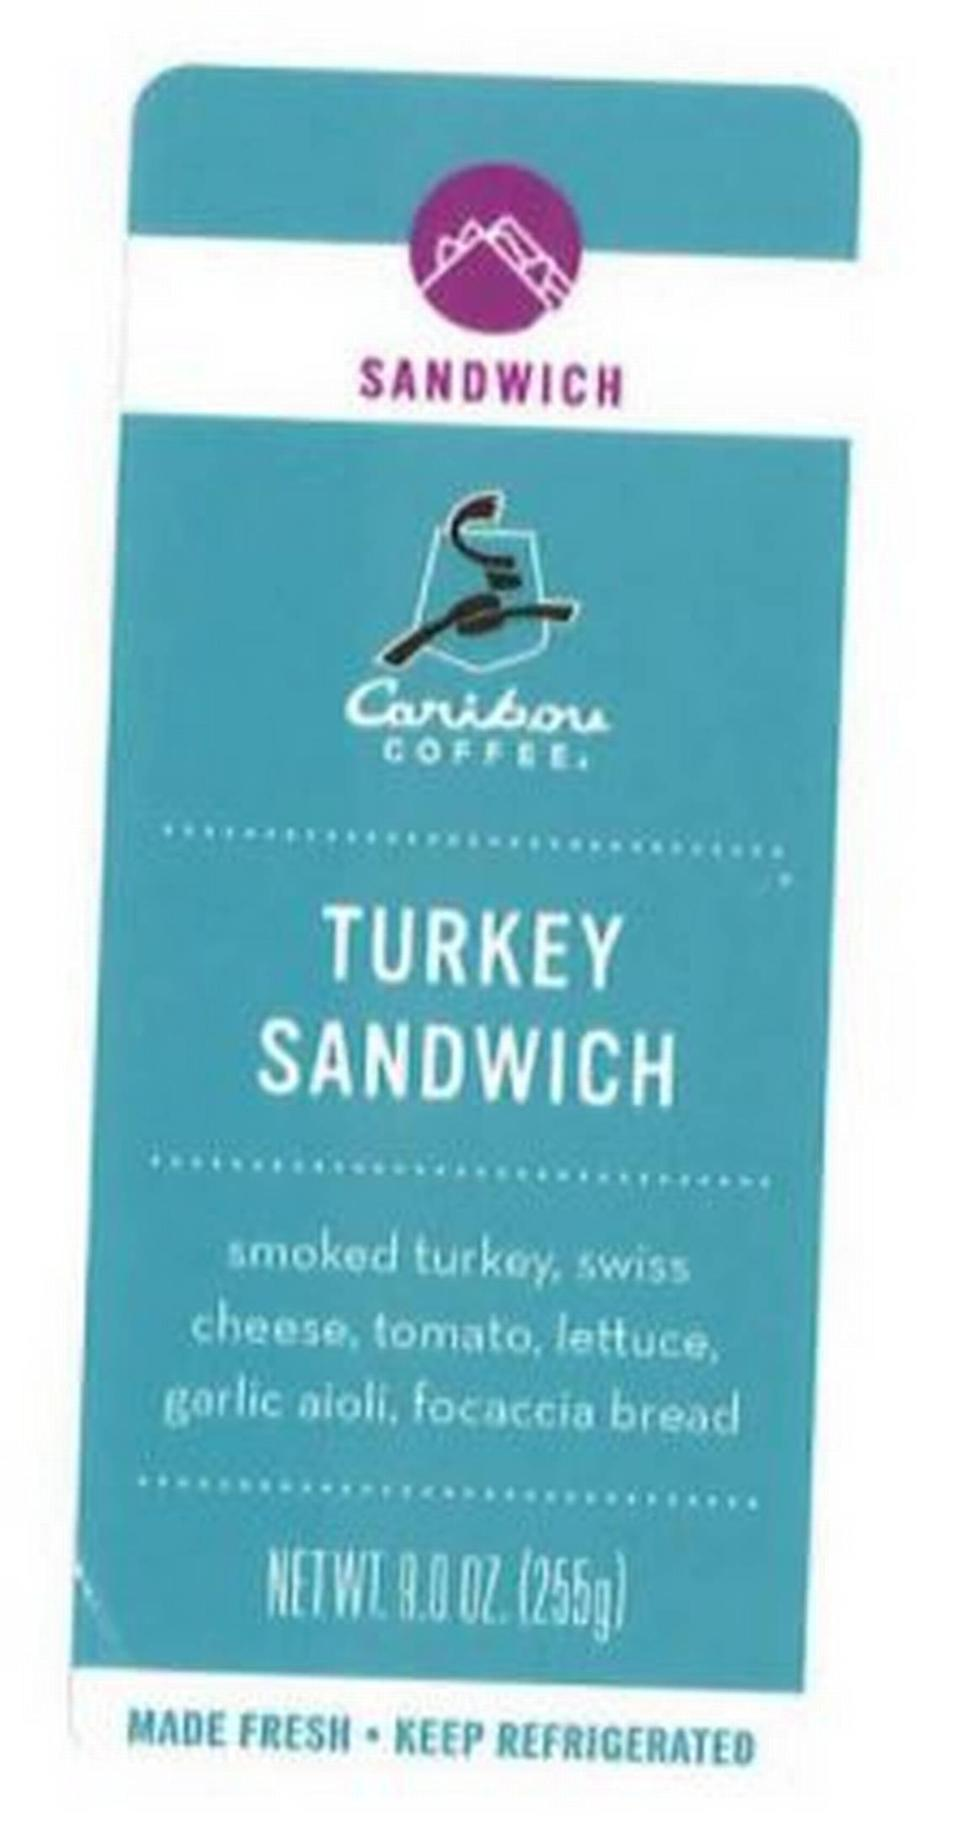 Caribou Turkey Sandwich label